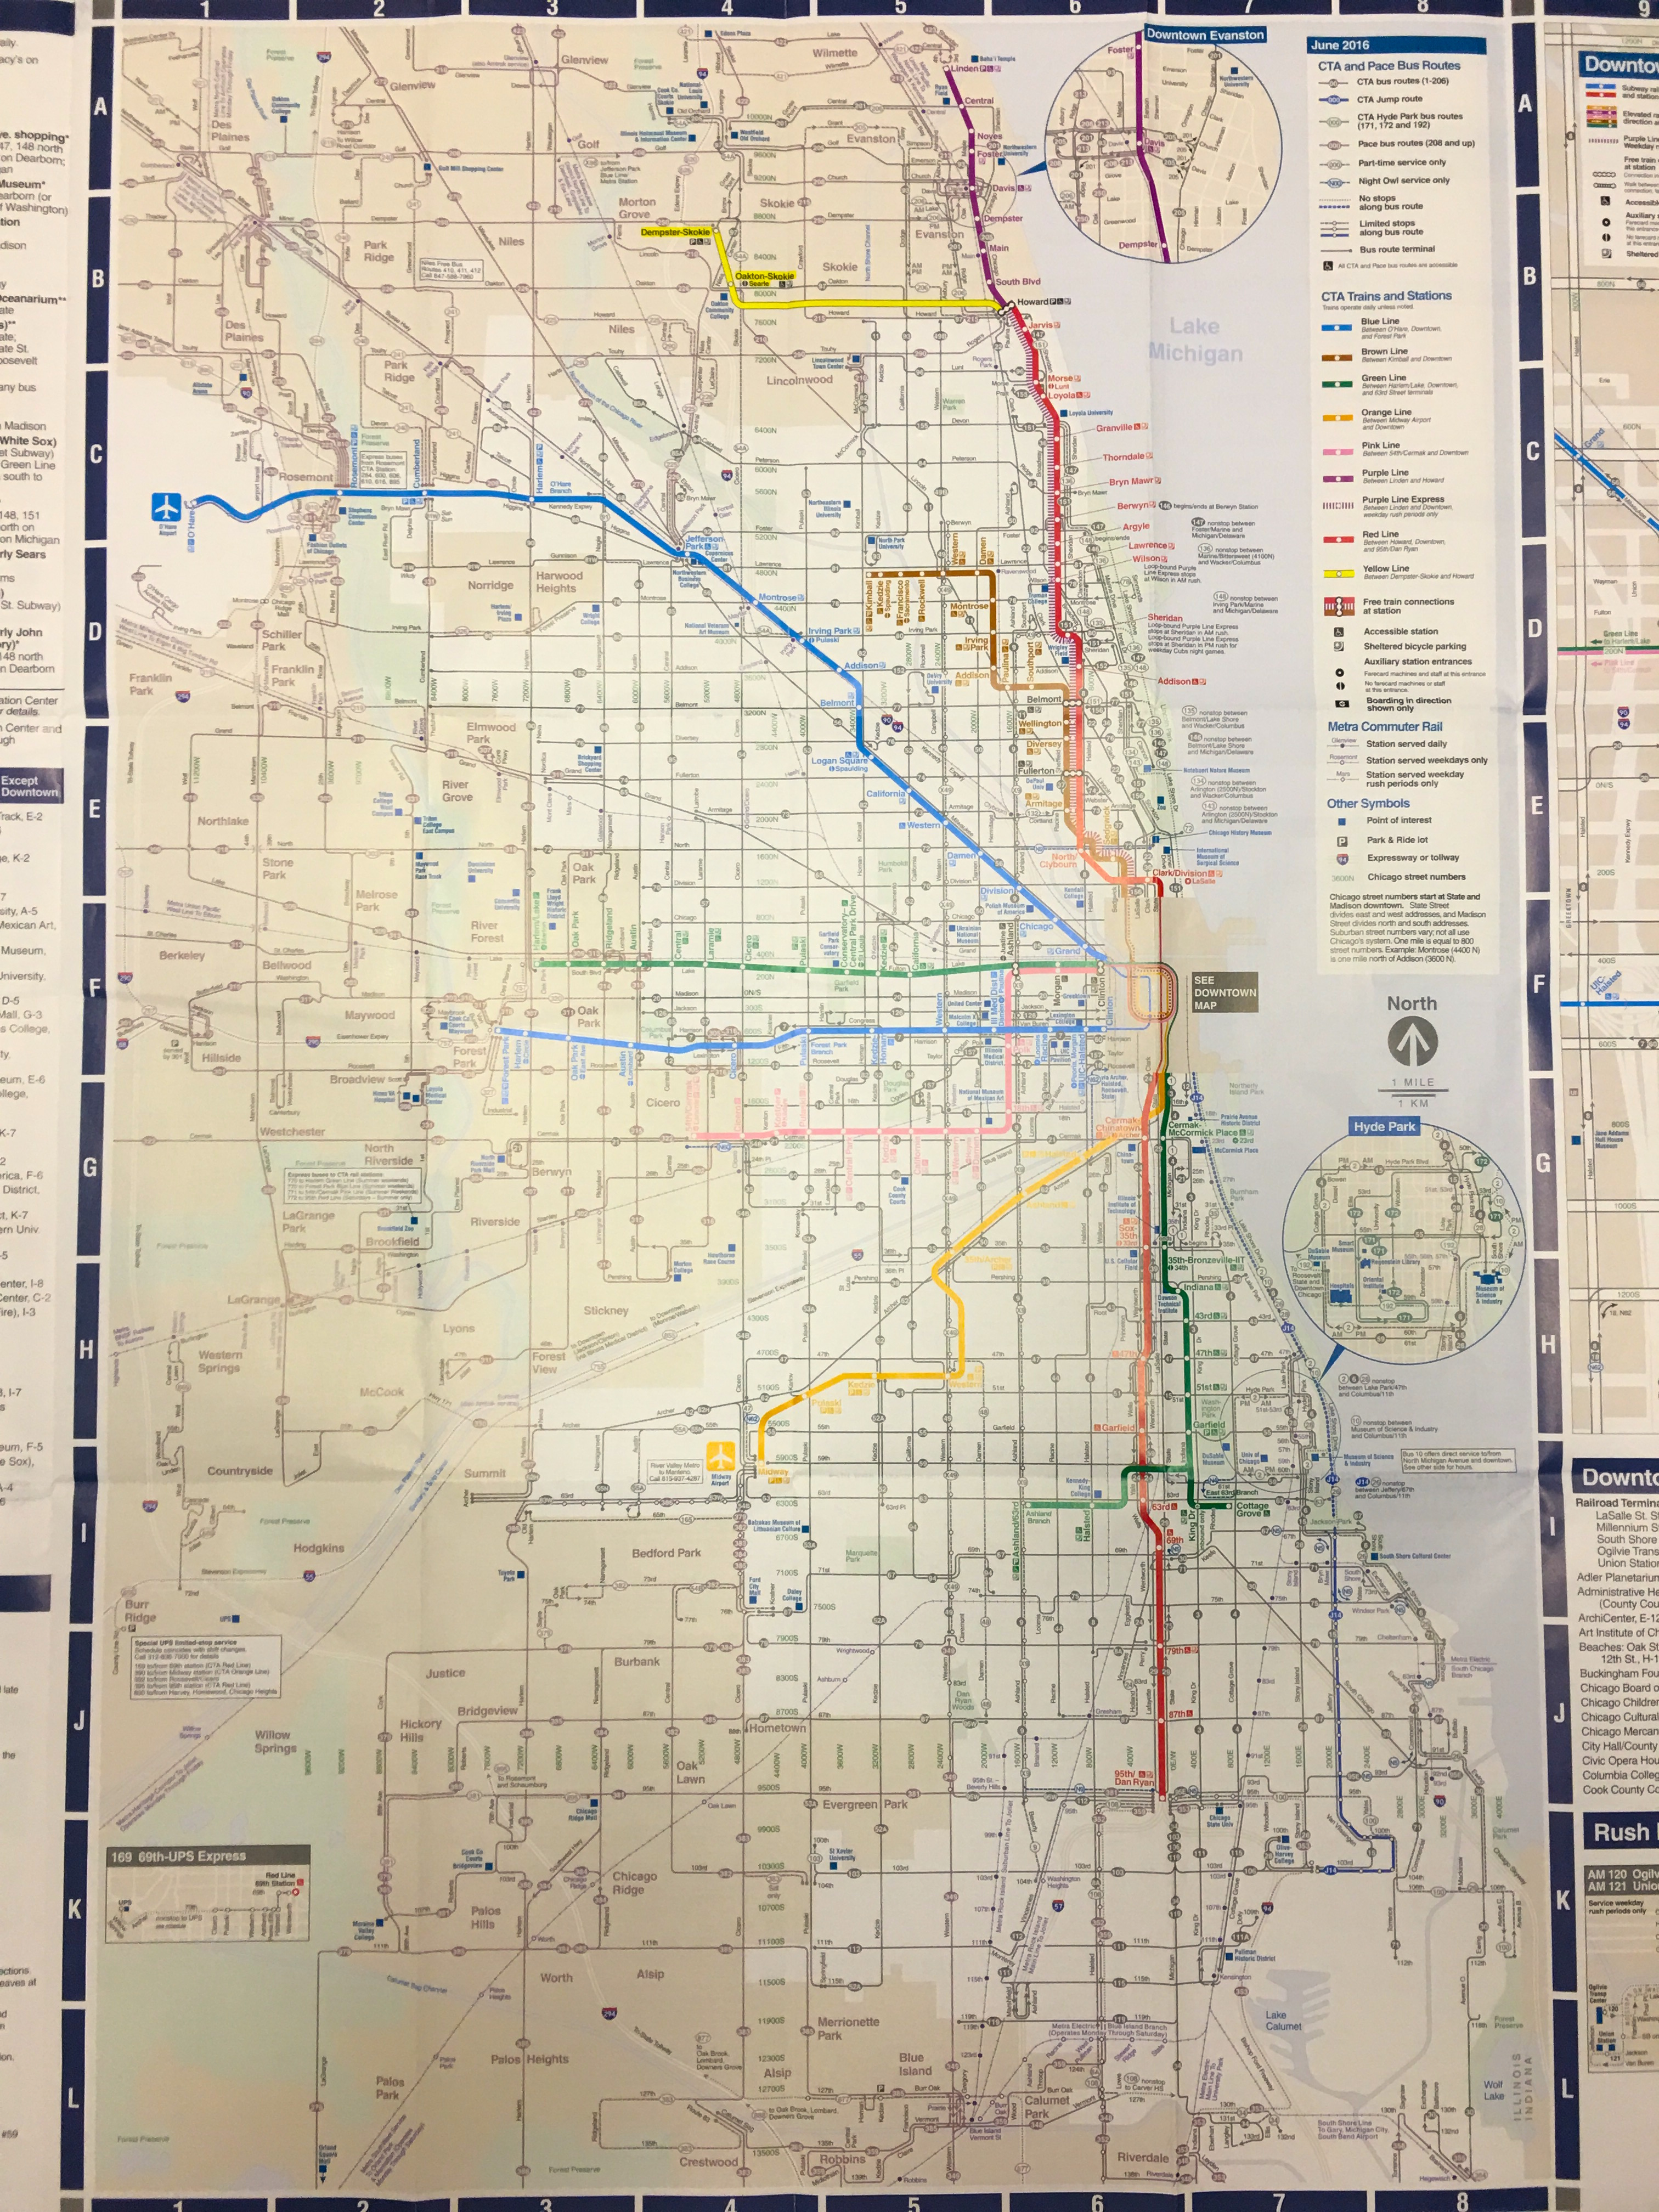 Chicago CTA Train Bus Map - Chicago map by county